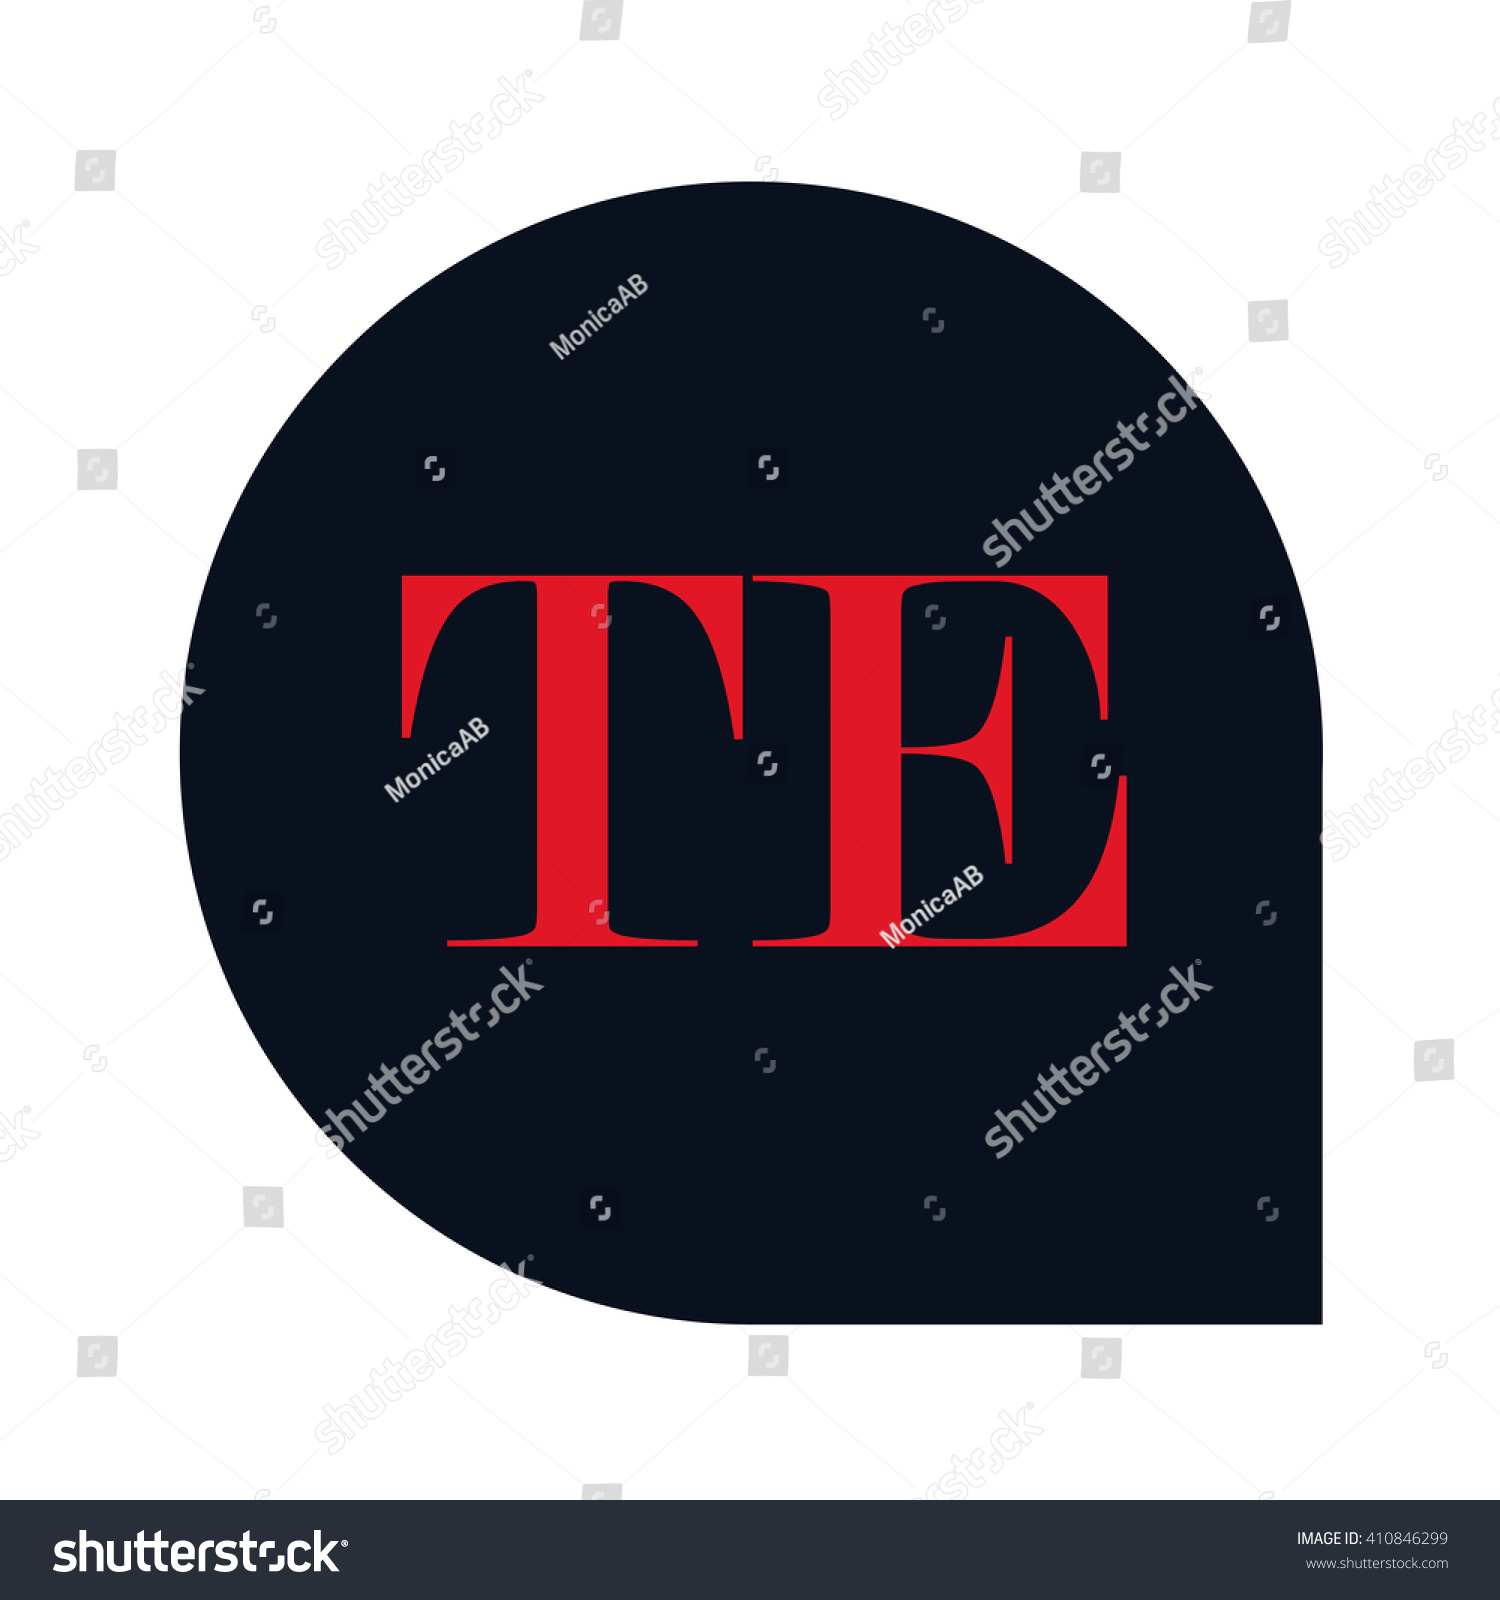 Te Letters Red Abstract Black Background Stock Vector 410846299 ...